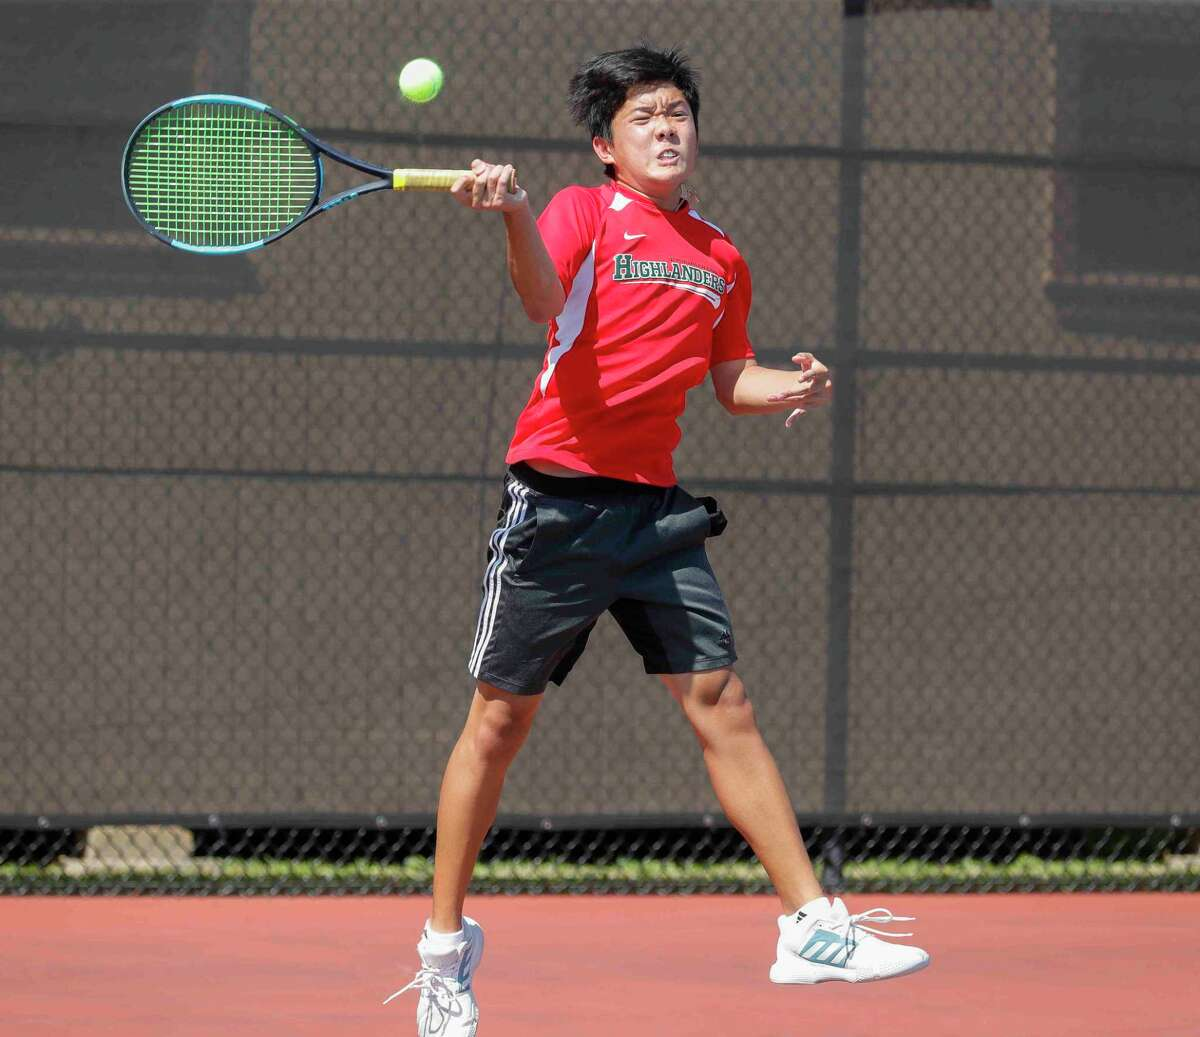 Eli Sam of The Woodlands returns a serve in a boys doubles championship match during the District 13-6A high school tennis tournament at The Woodlands High School, Thursday, April 8, 2021, in The Woodlands.